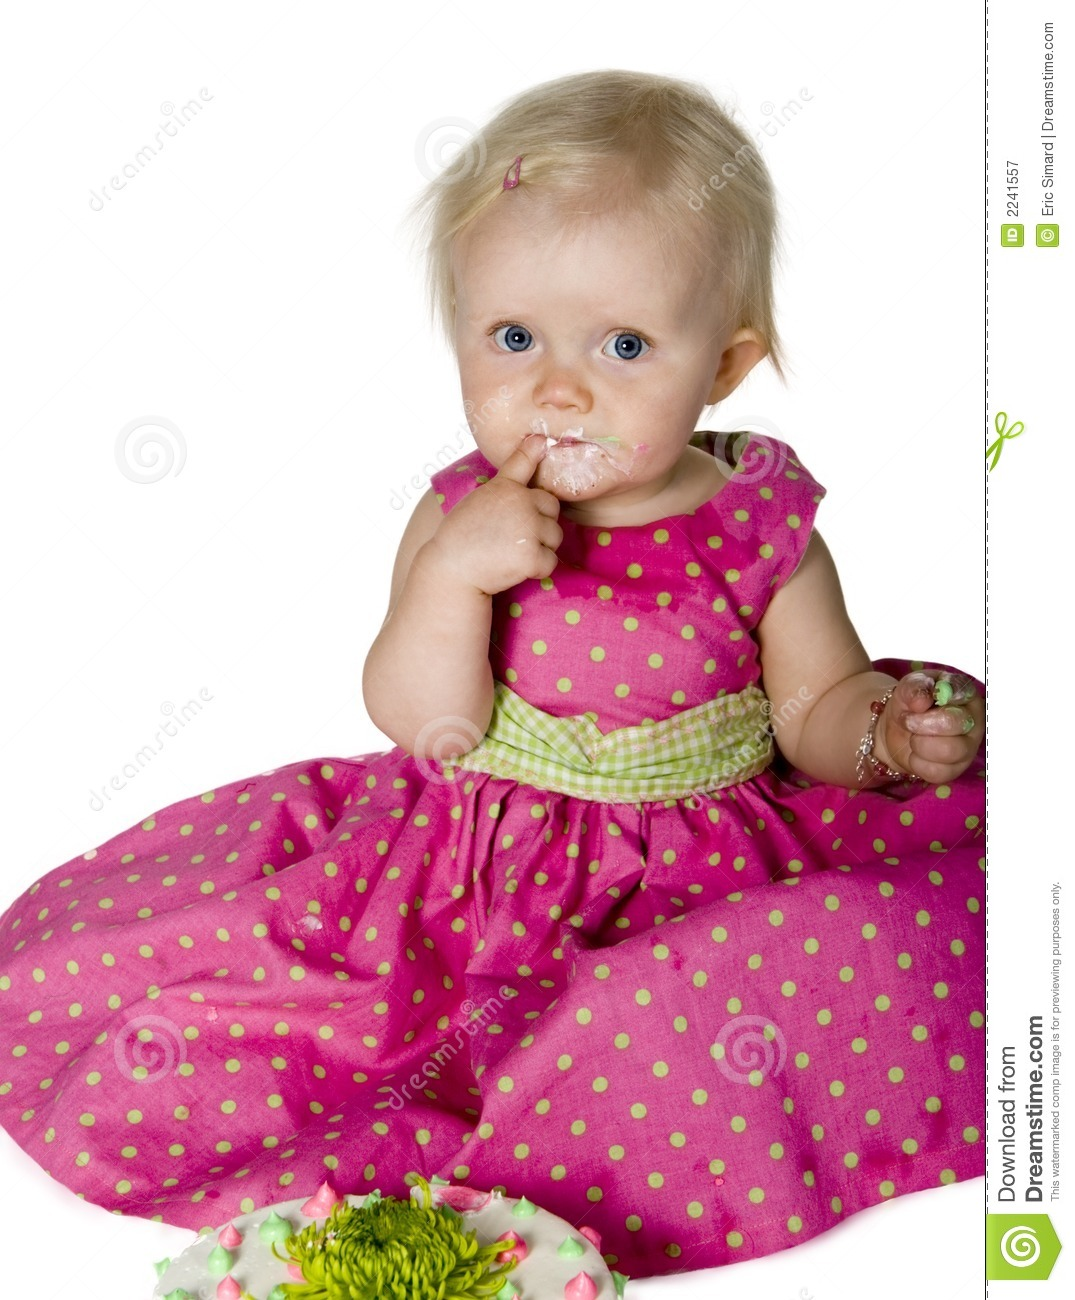 Baby Eating Cake Royalty Free Stock Photography - Image ...